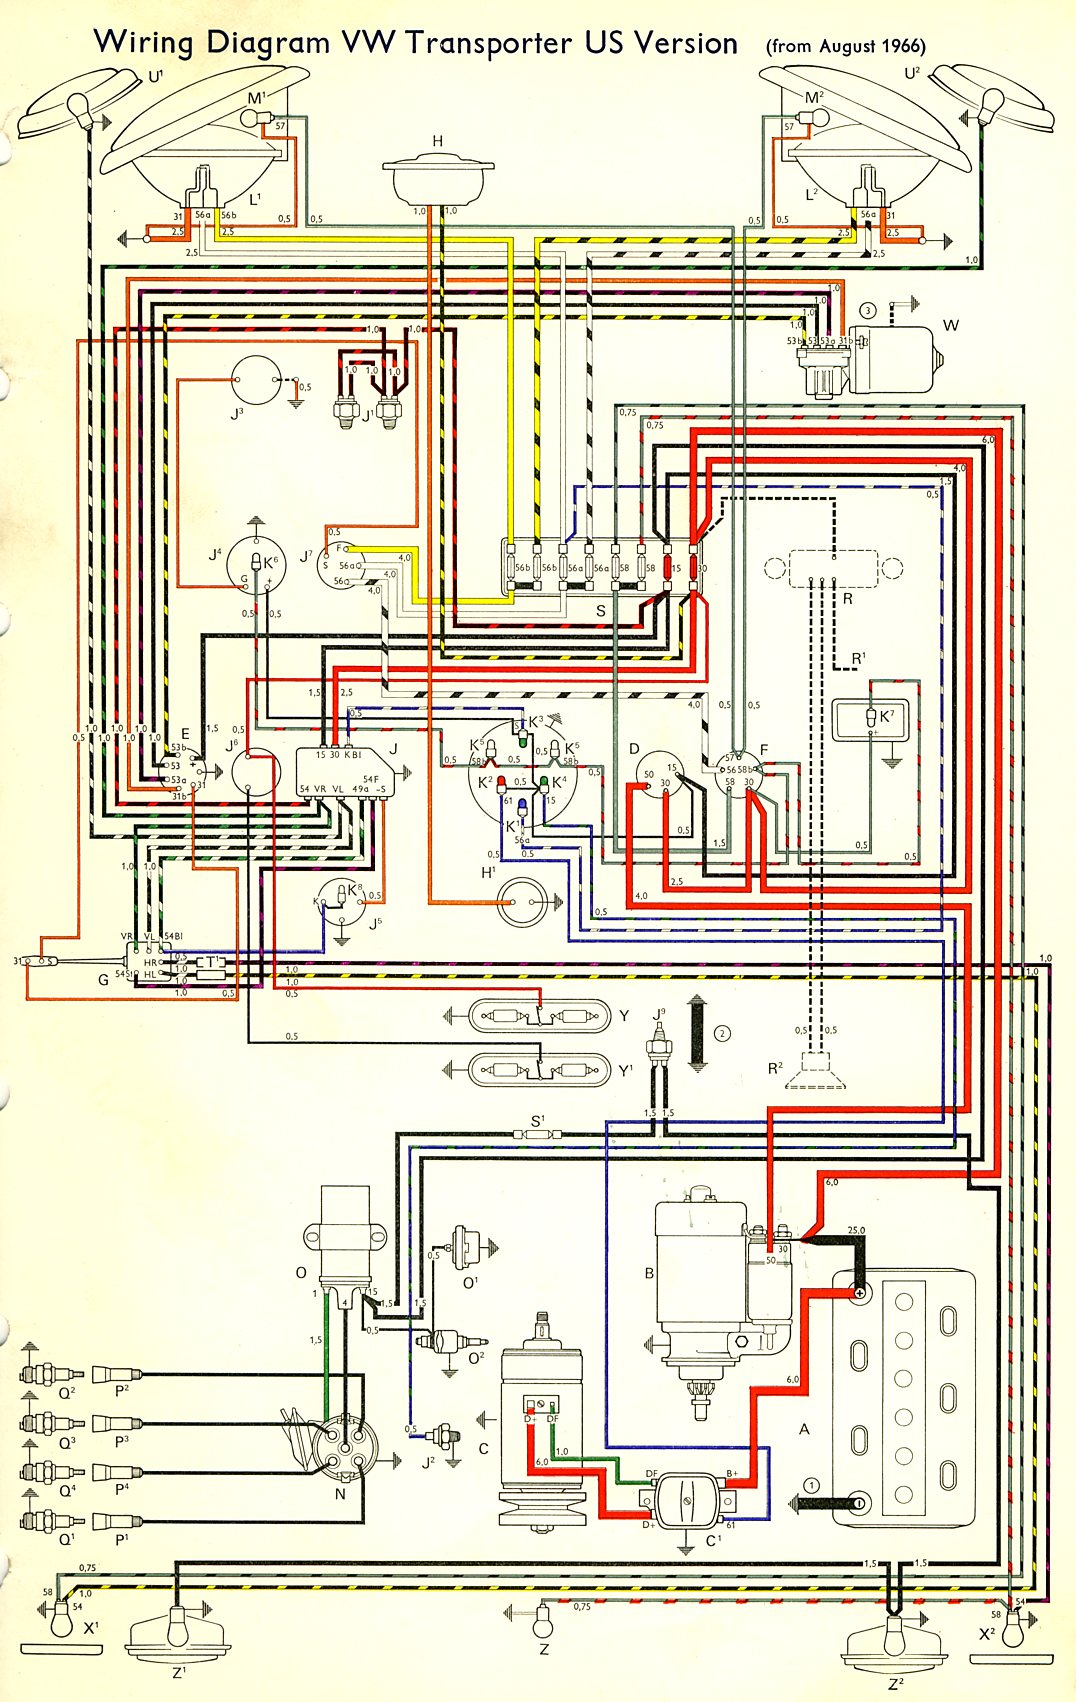 bus_67_USA 1967 bus wiring diagram (usa) thegoldenbug com 1971 vw bus wiring diagram at aneh.co